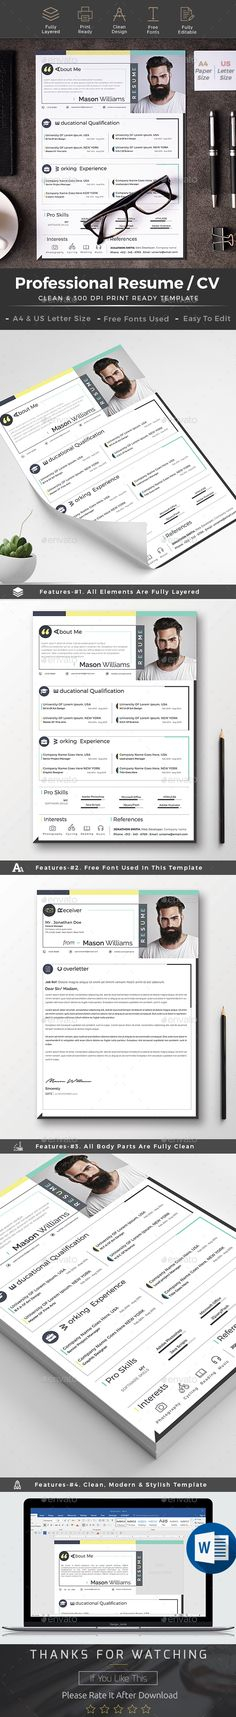 Blank Corporate Set Isolated on Grey Mock Up Technology, Office - blank memo template